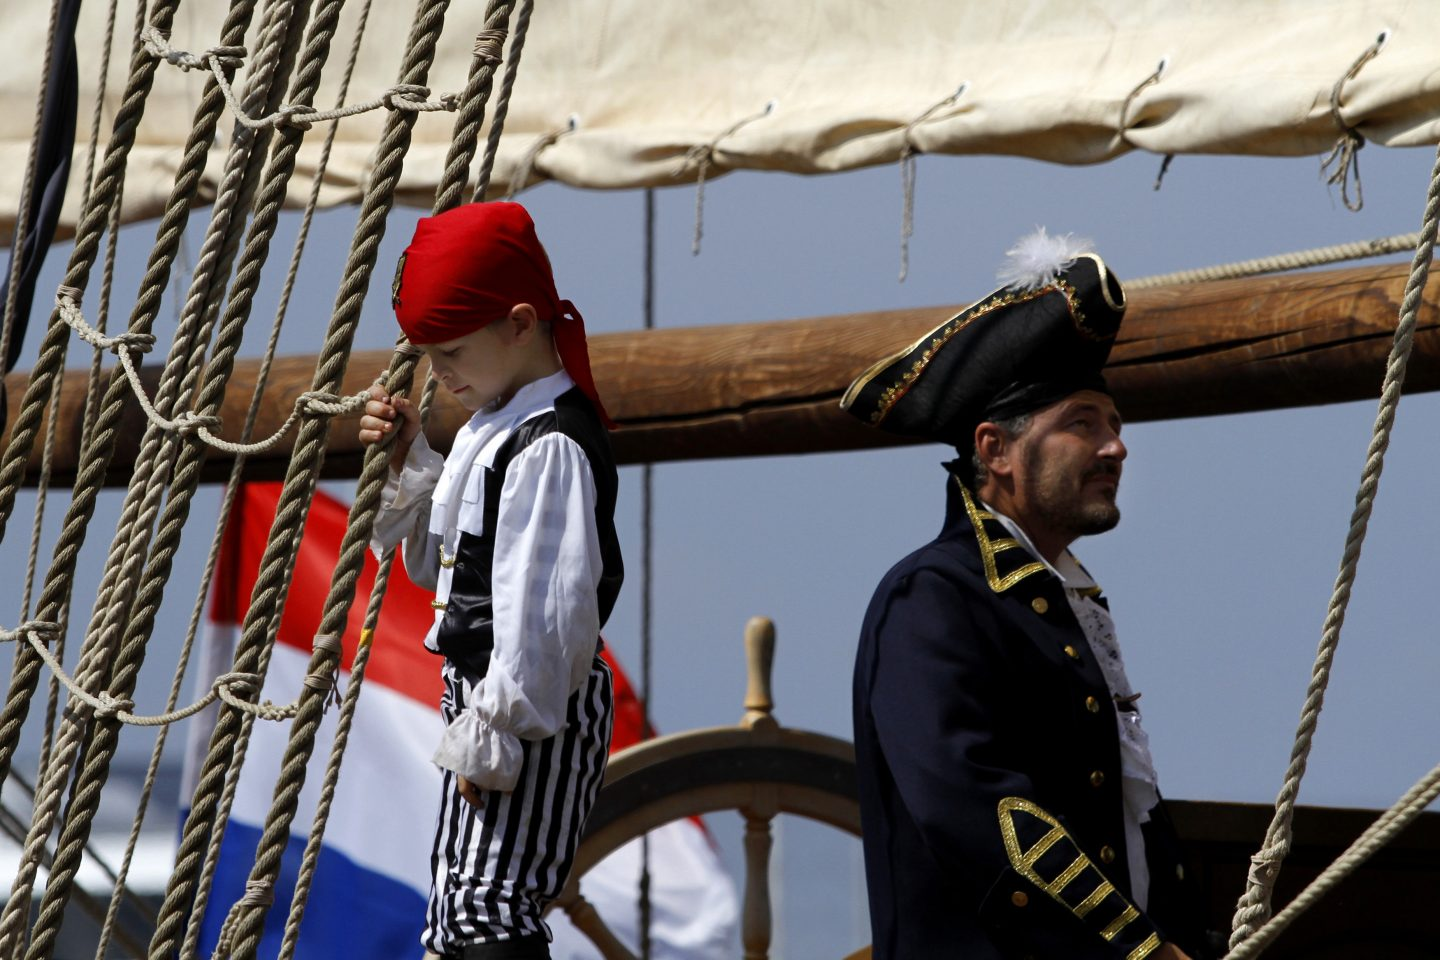 Pirates' show aboard corsair ship in Athens